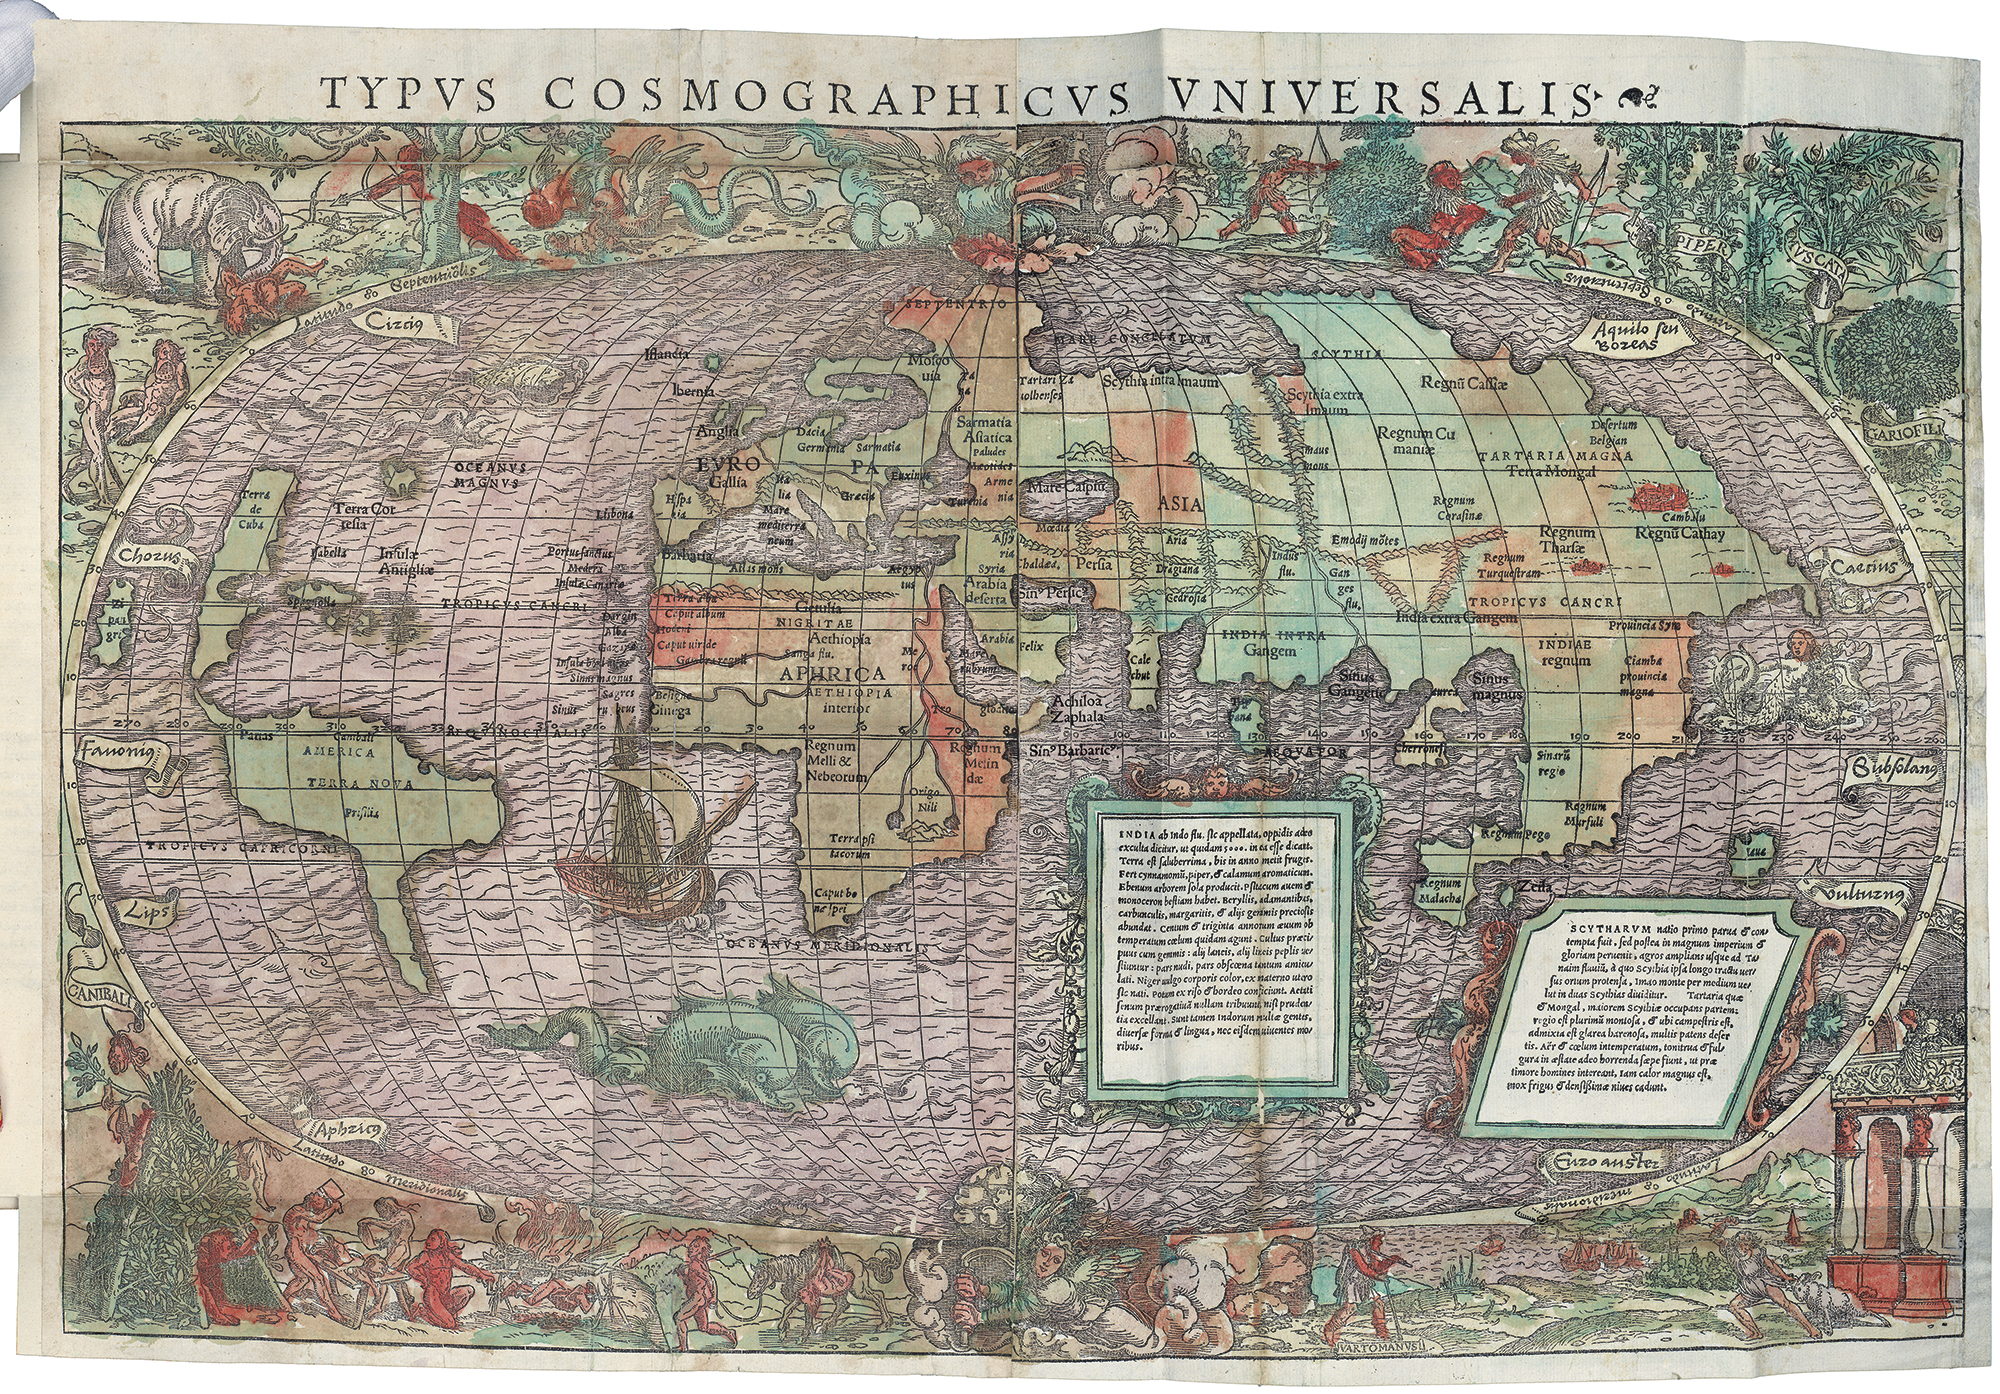 """Typvs Cosmographicvs Vniversalis in Novvs Orbis Regionvm ac insvlarvm veteribvs incognitarvm"" Attributed to Sebastian Münster, cartographer, and Hans Holbein the Younger 1537 print and wash on paper 15 x 22 in."